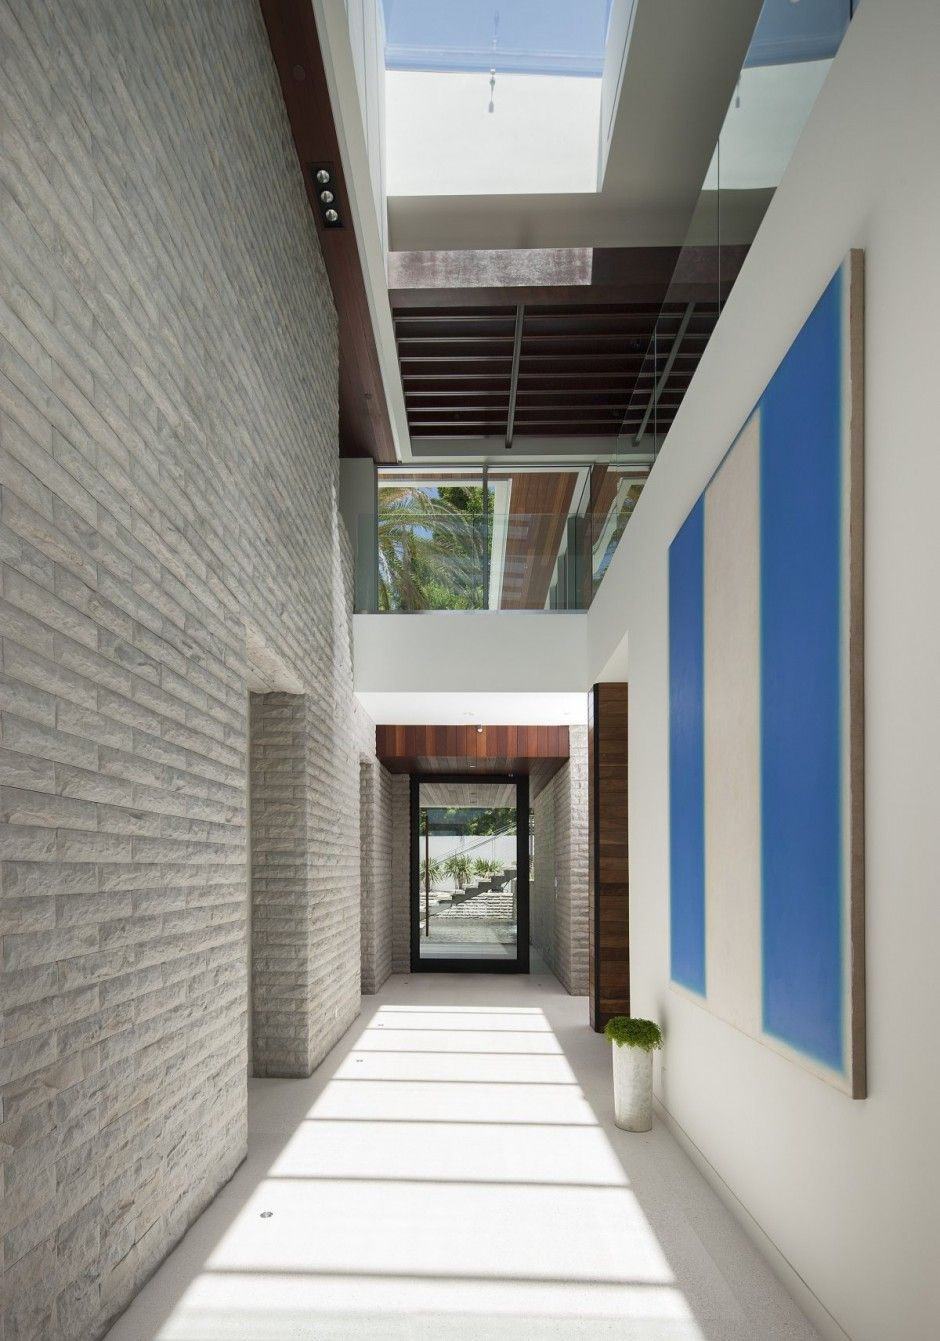 Architecture interiors A Sense of Boldness and